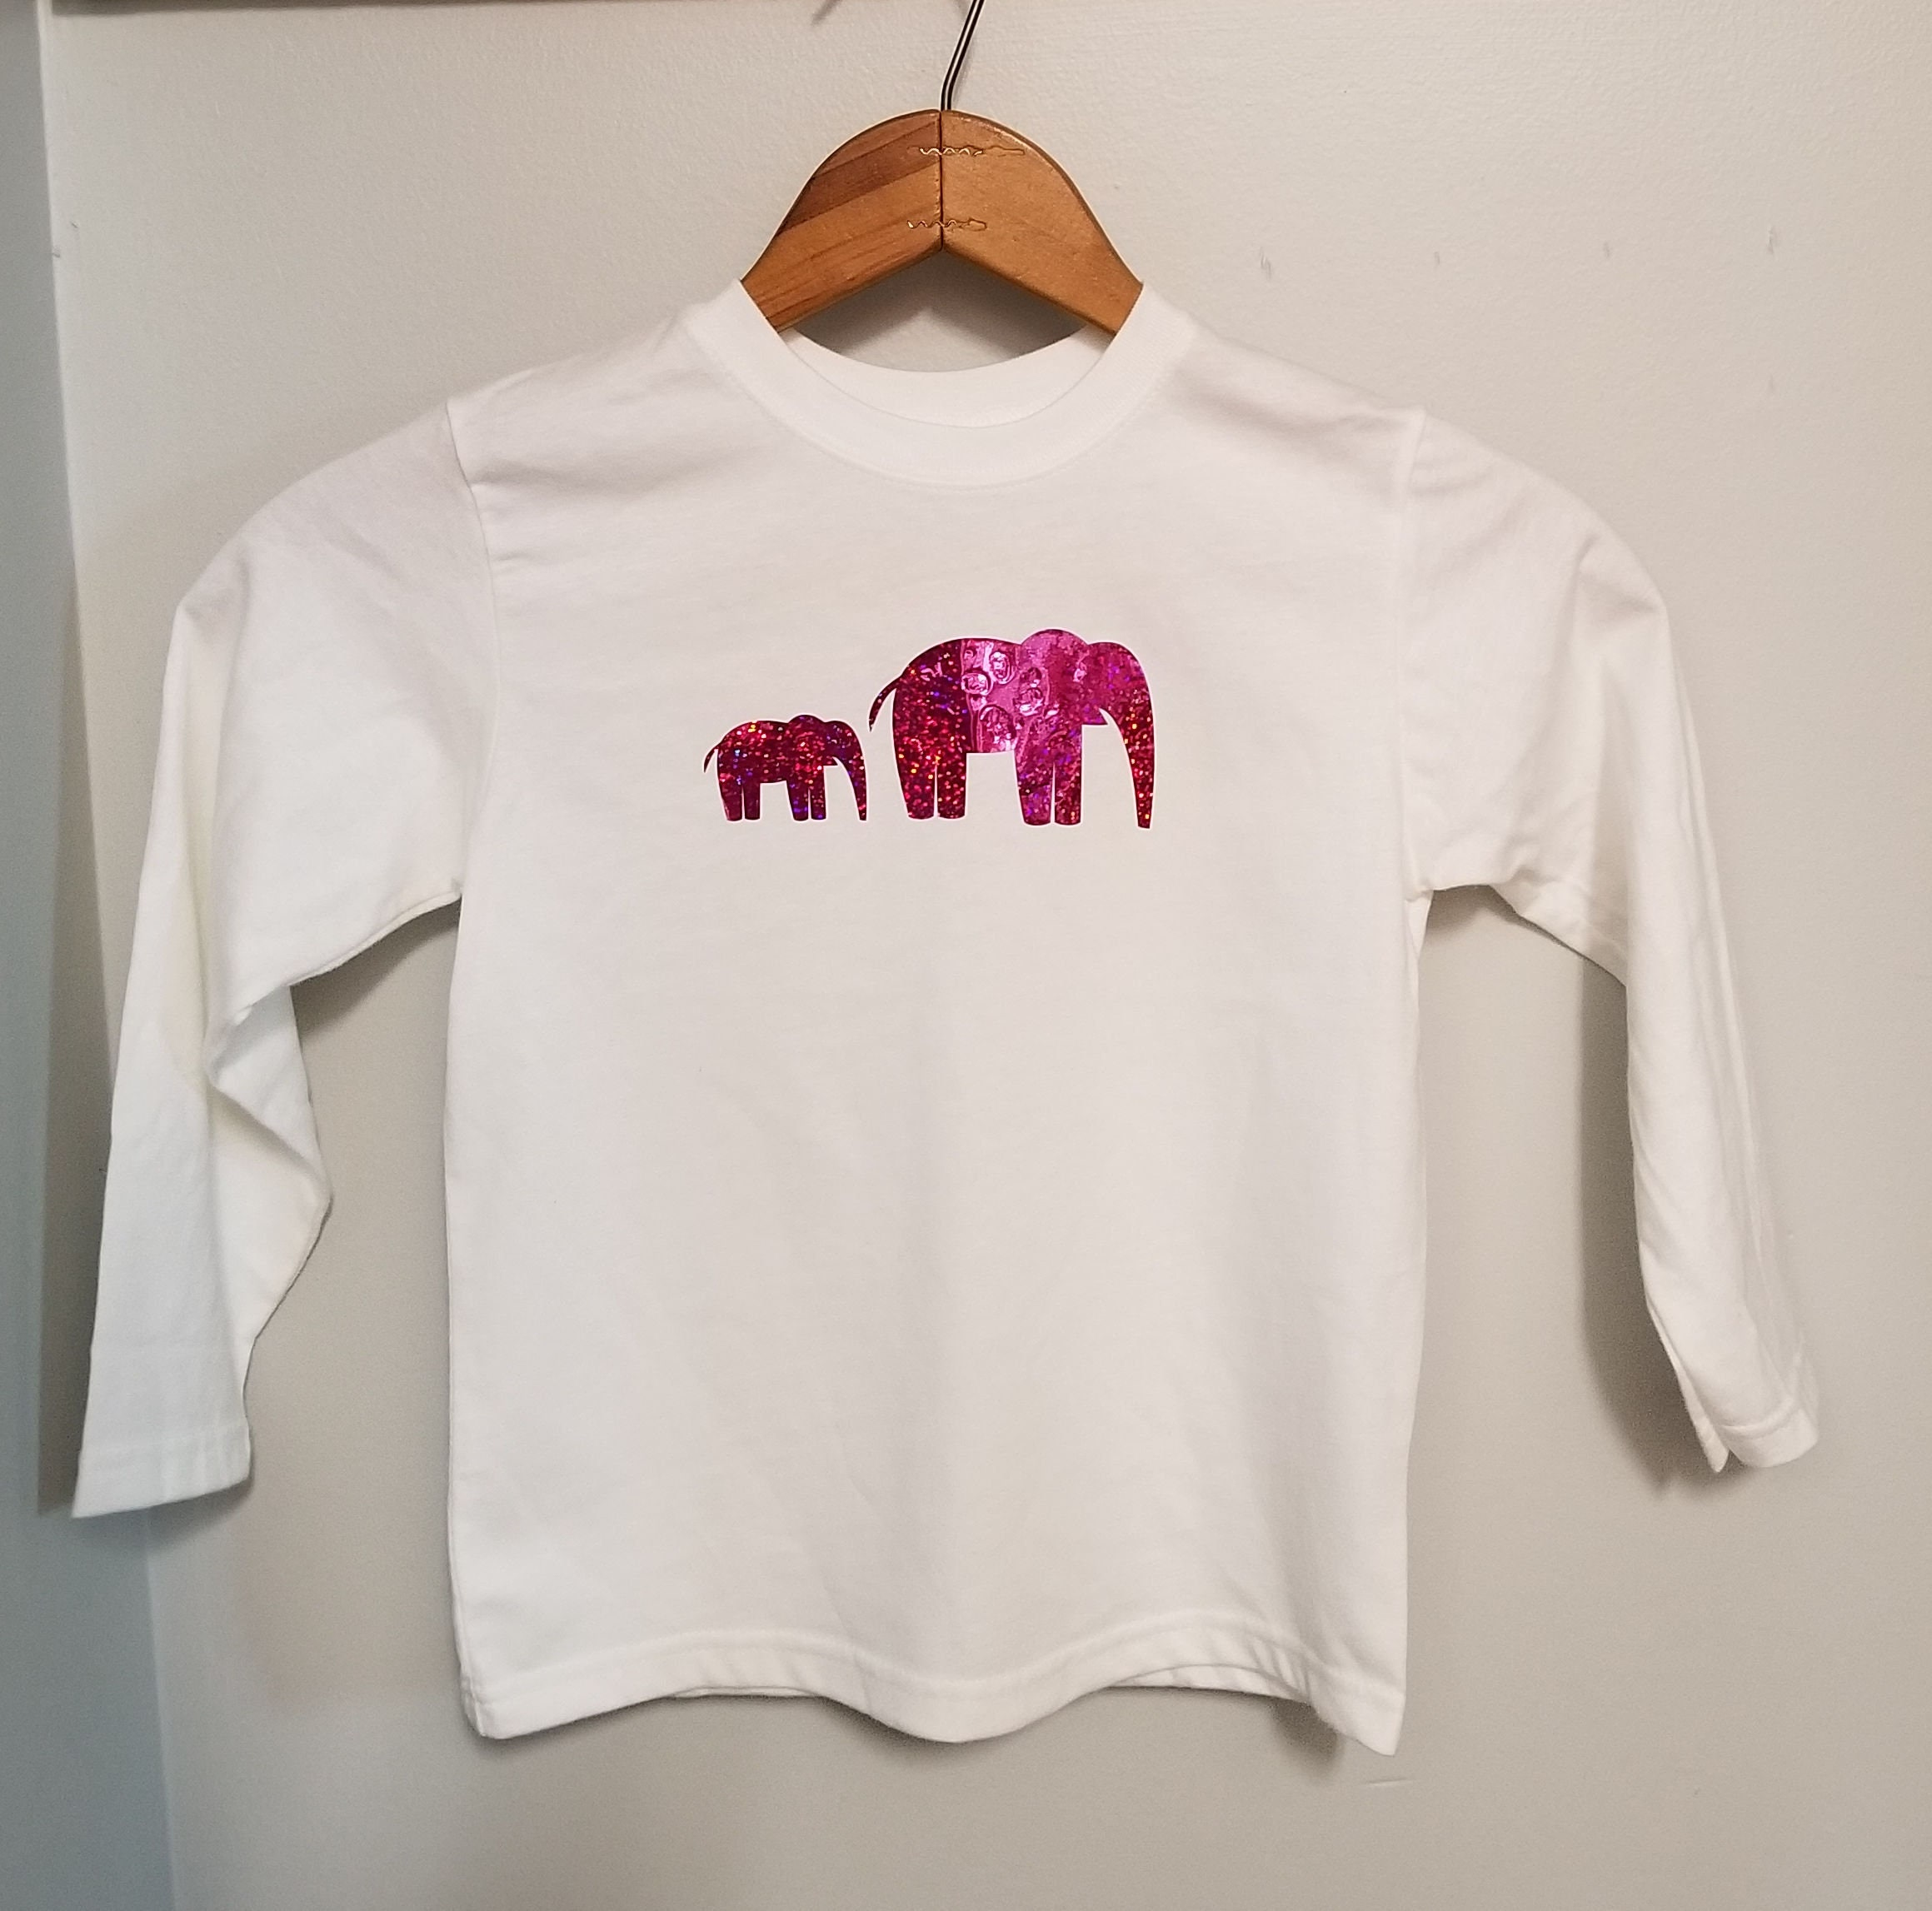 a0522456ef50c8 Elephant Baby T-Shirt  Toddler T-Shirt  Sparkle T-Shirt  Baby Shower Gift